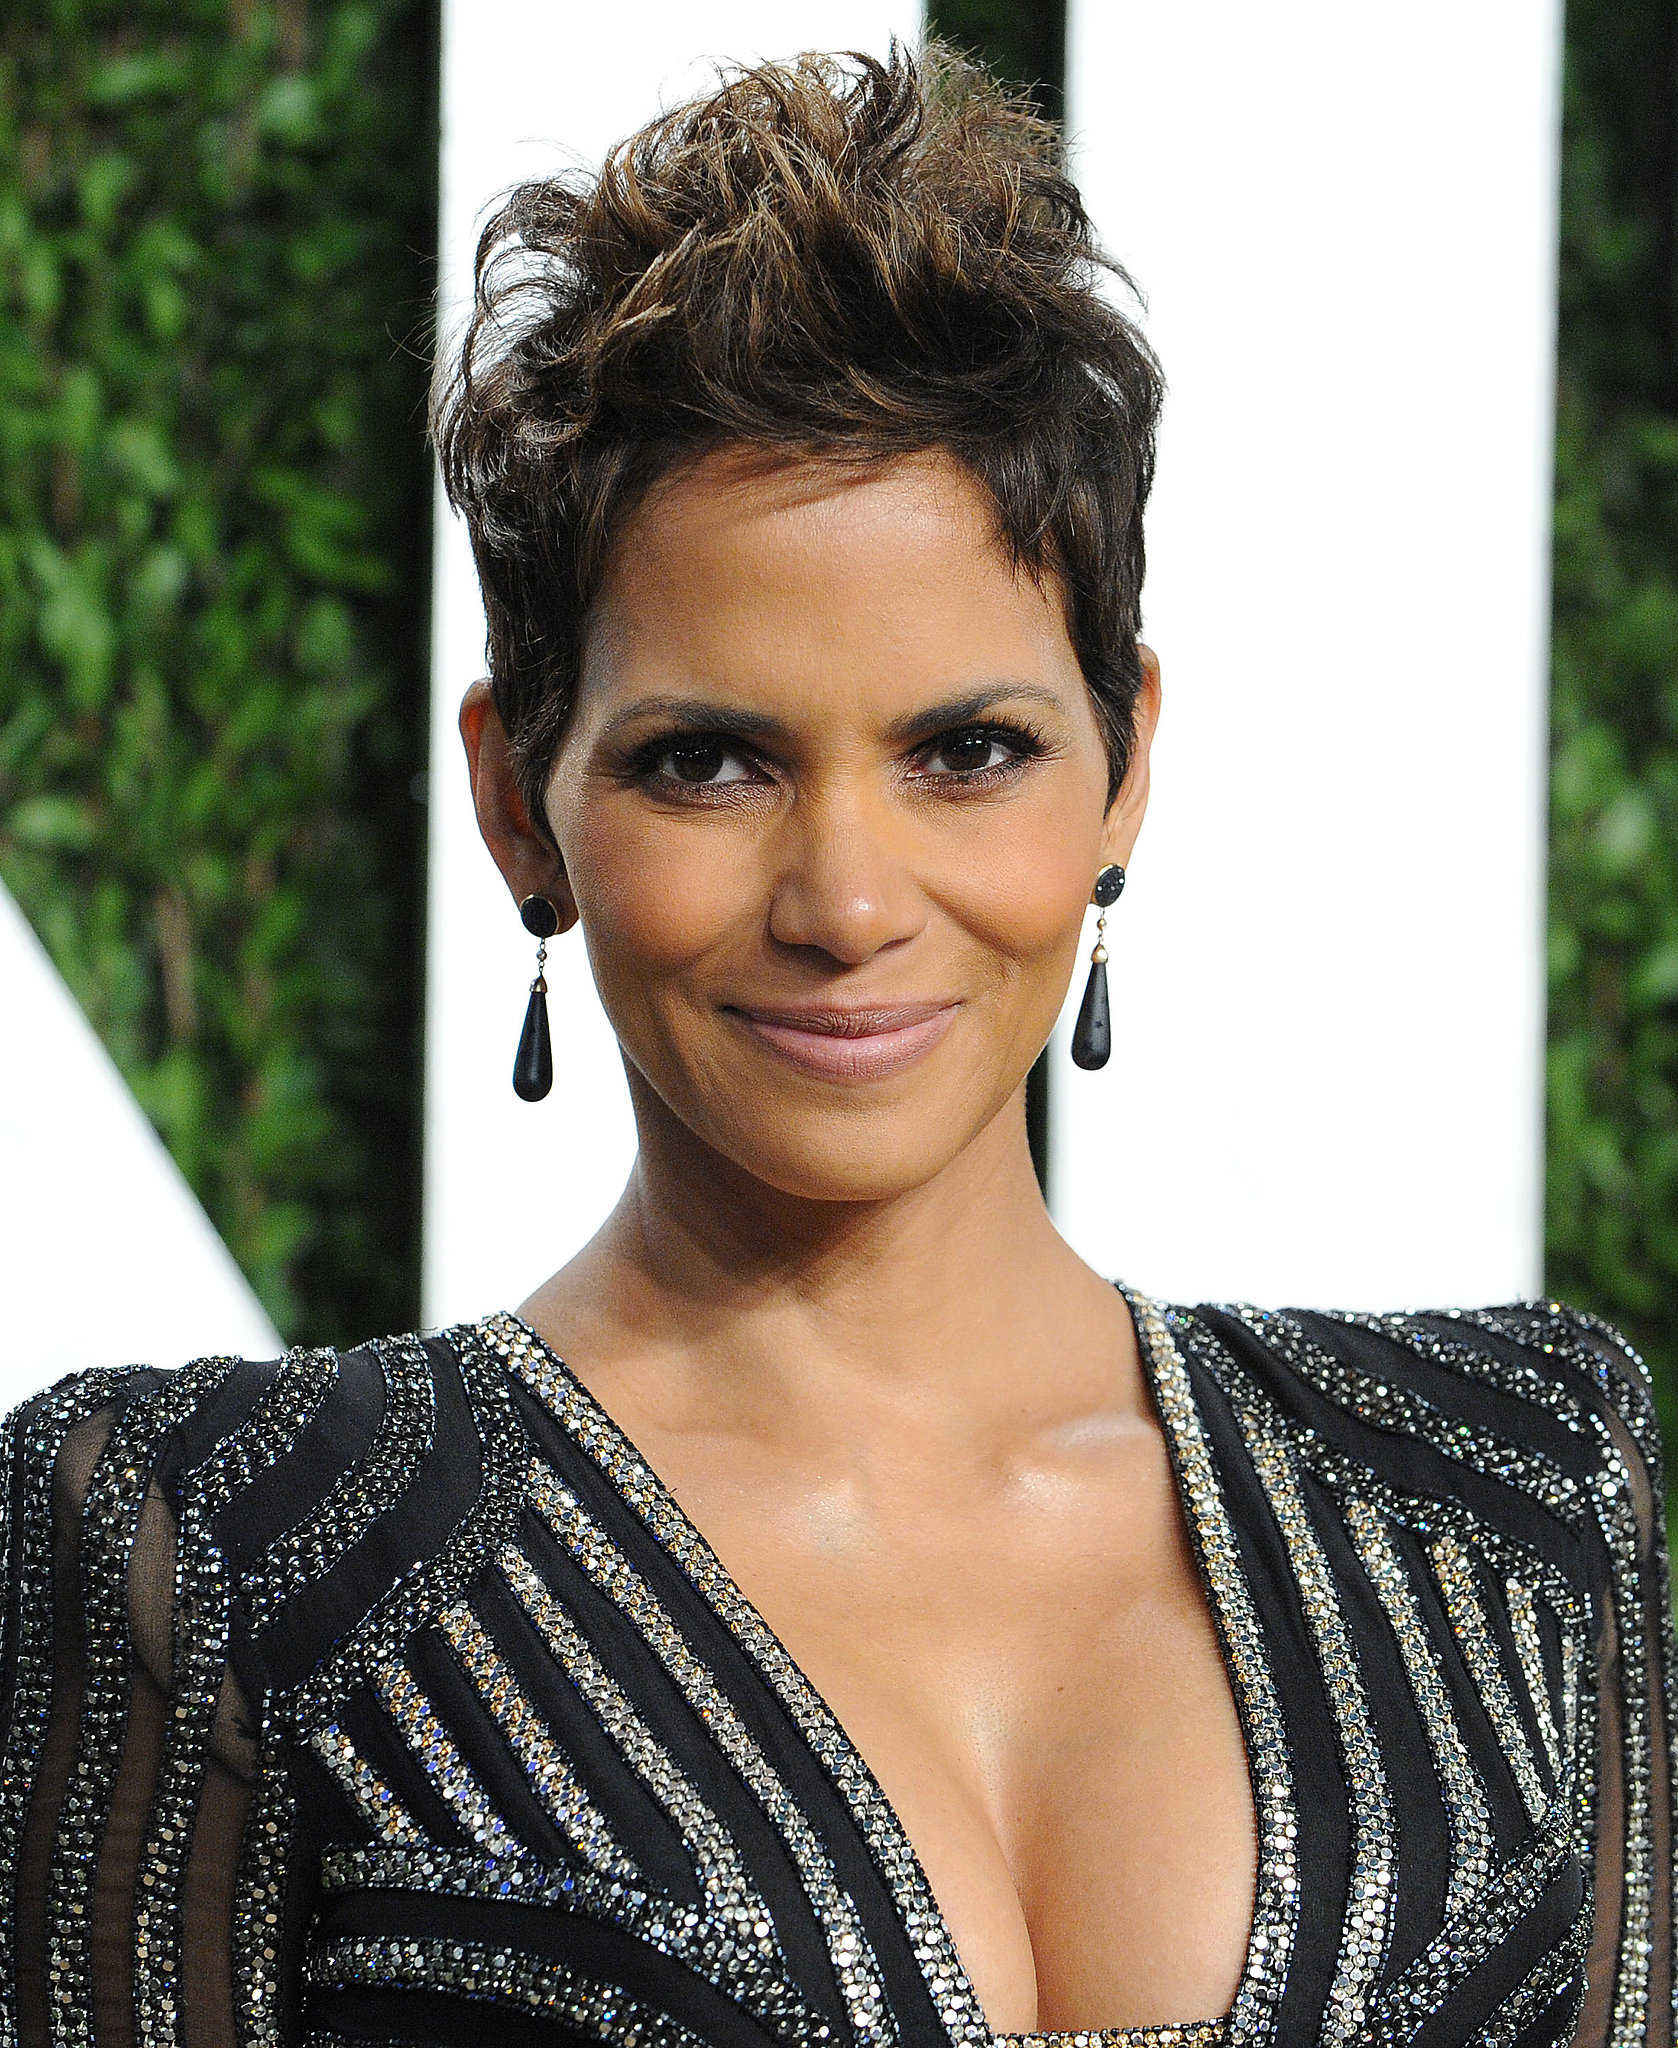 Coiffure Courte Halle Berry Halle Berry 39s Iconic Coiffure Never Seems To Go Out Of